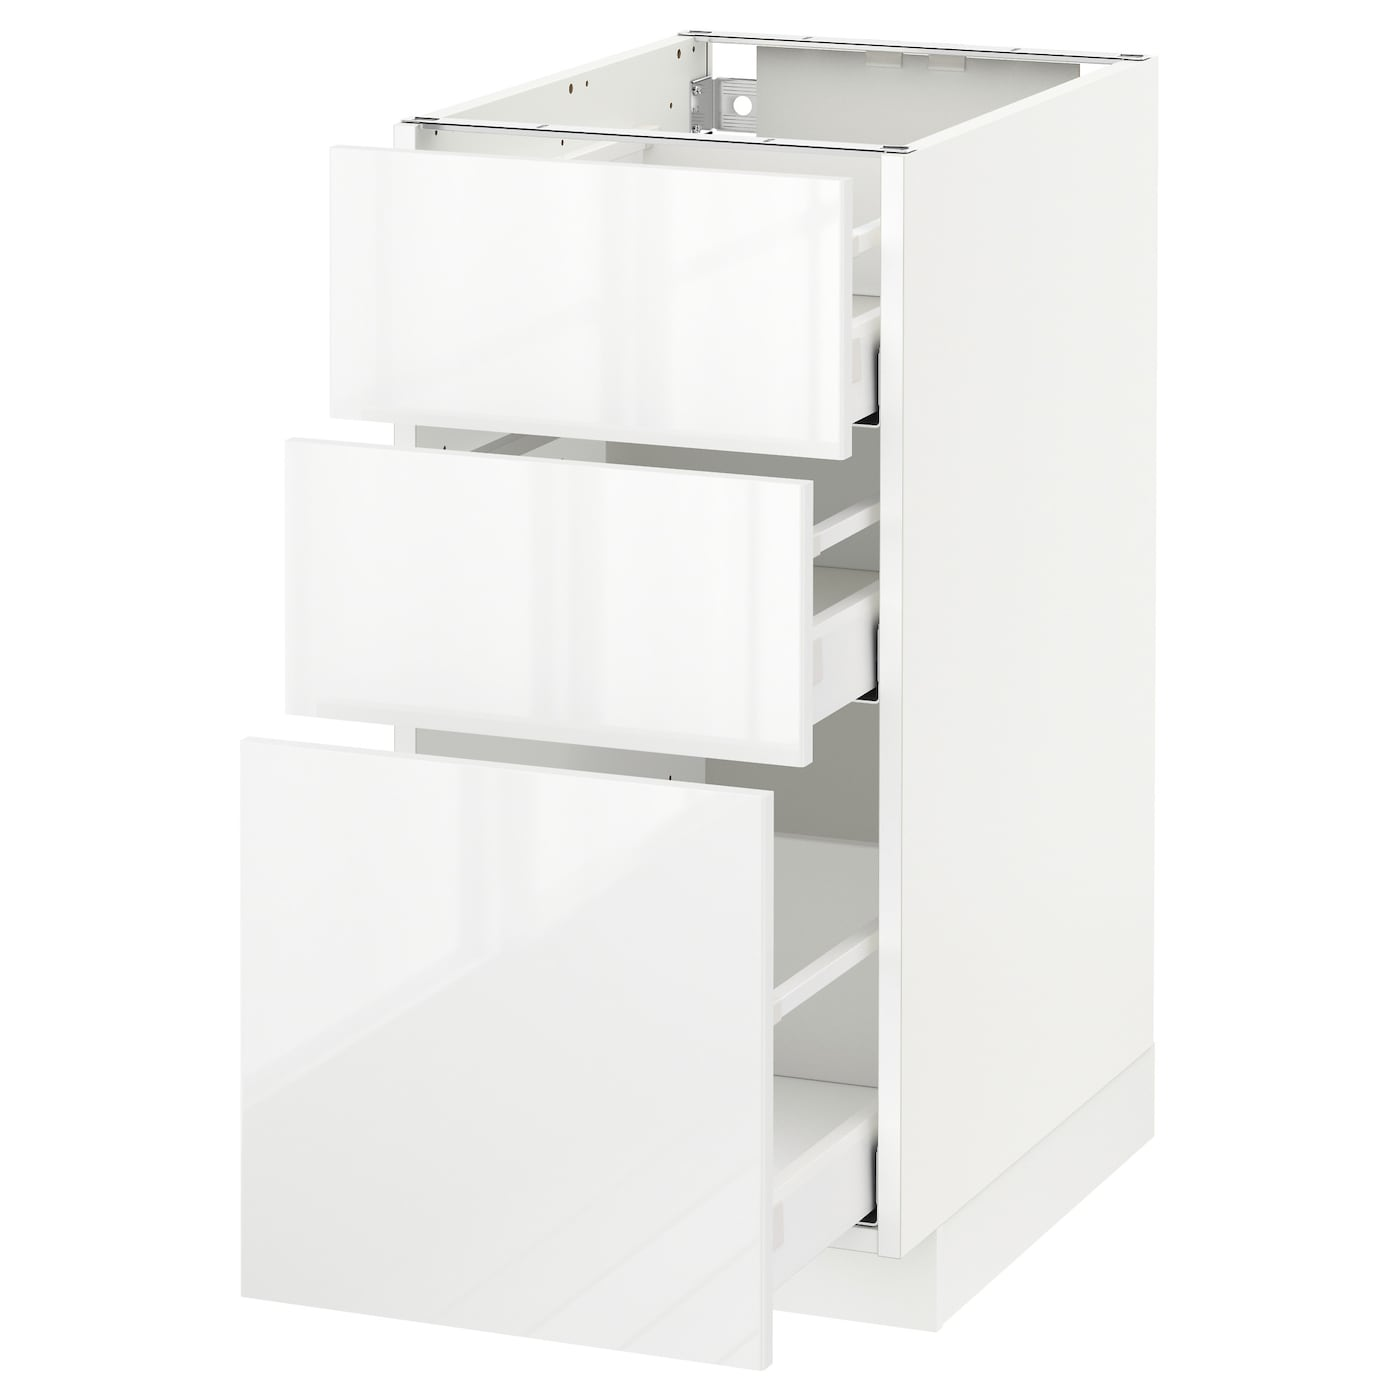 metod maximera base cabinet with 3 drawers white ringhult white 40 x 60 cm ikea. Black Bedroom Furniture Sets. Home Design Ideas